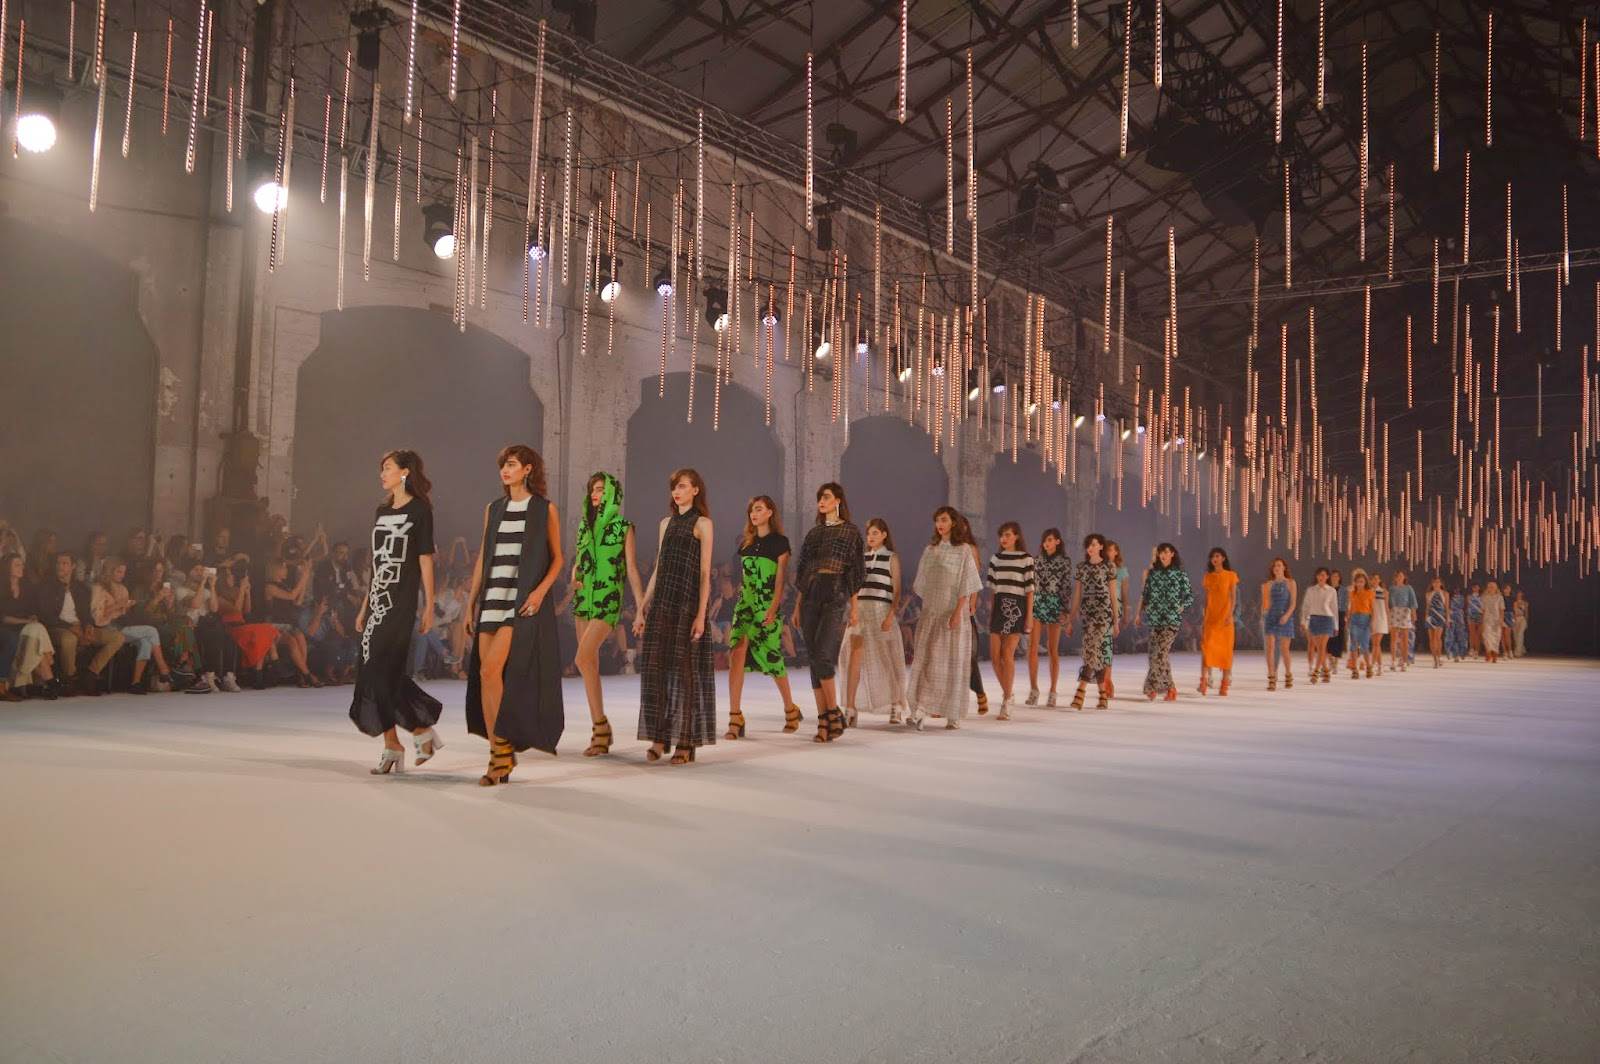 MBFWA: The 10 Shows That Stole Fashion Week